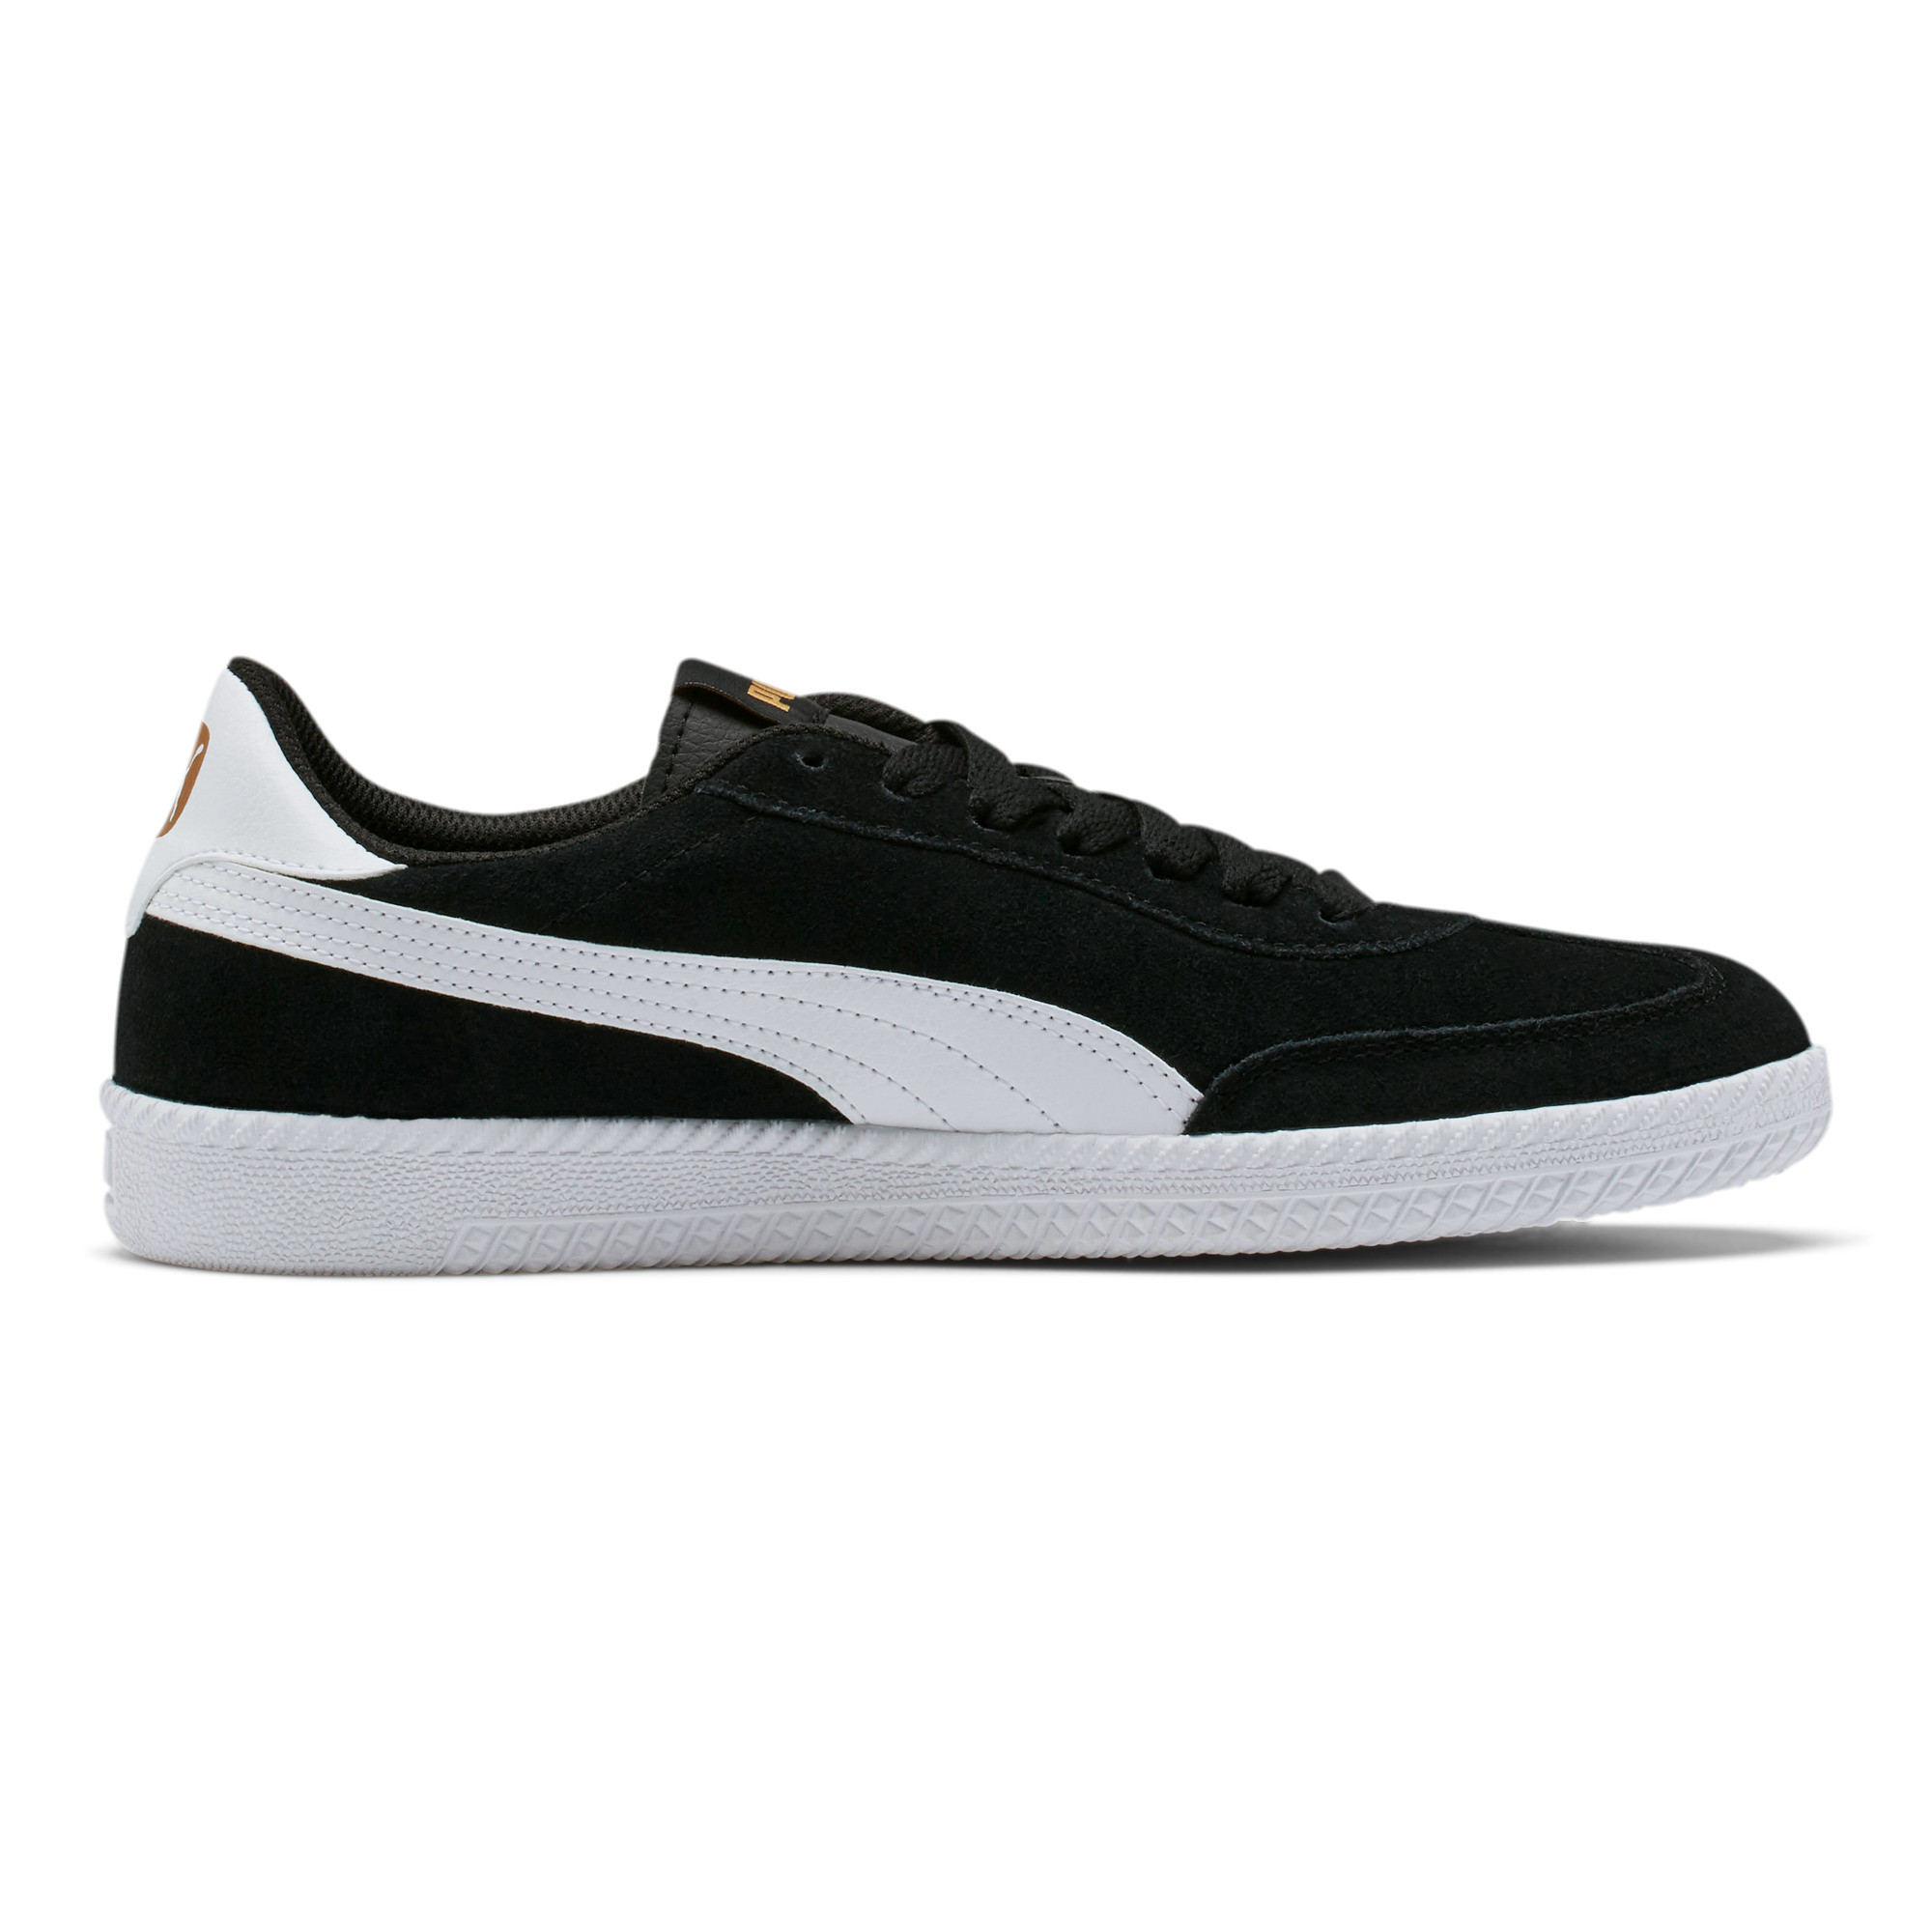 PUMA-Astro-Cup-Suede-Sneakers-Men-Shoe-Basics thumbnail 11